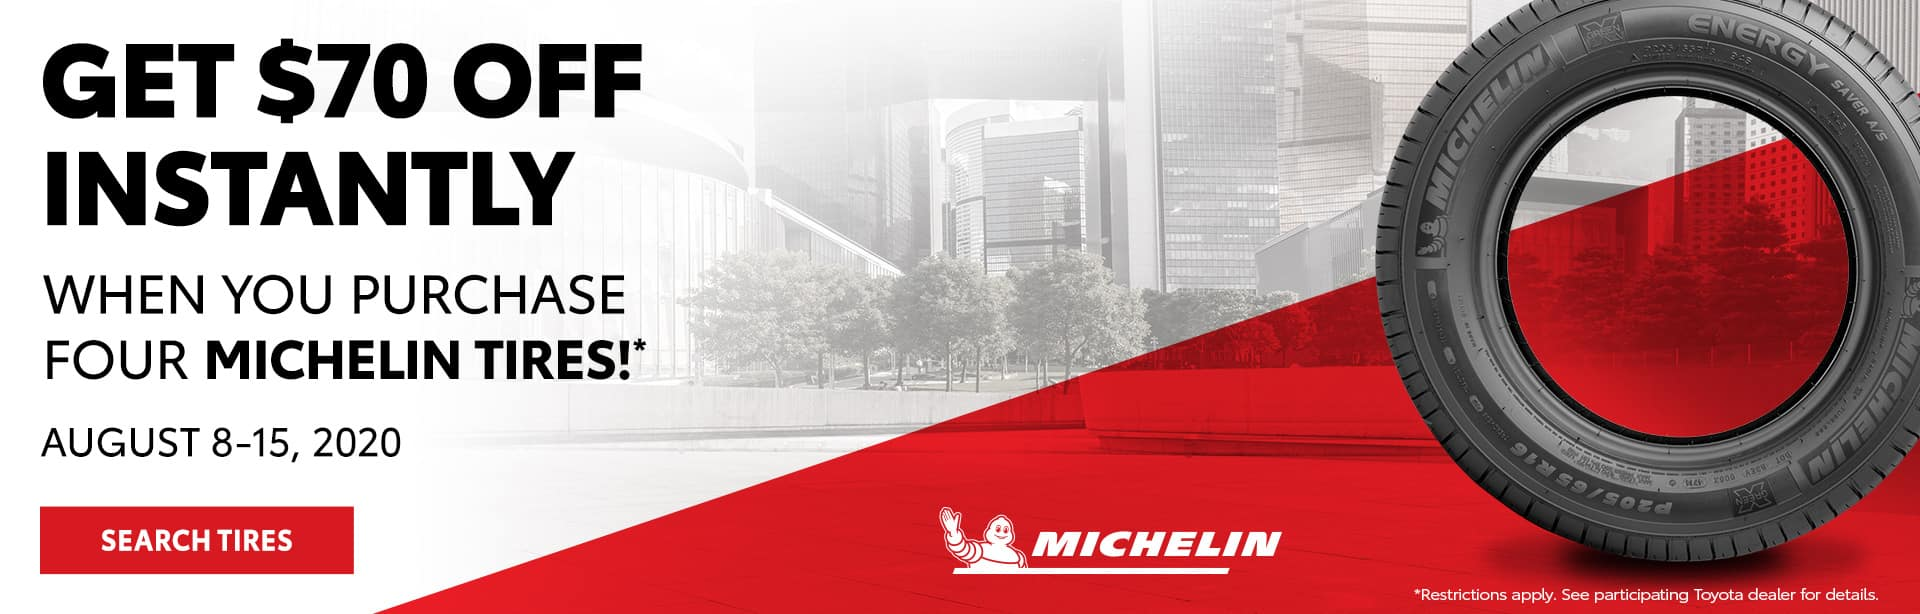 Get $70 Off Instantly when you Purchase 4 Michelin Tires at Bev Smith Toyota!